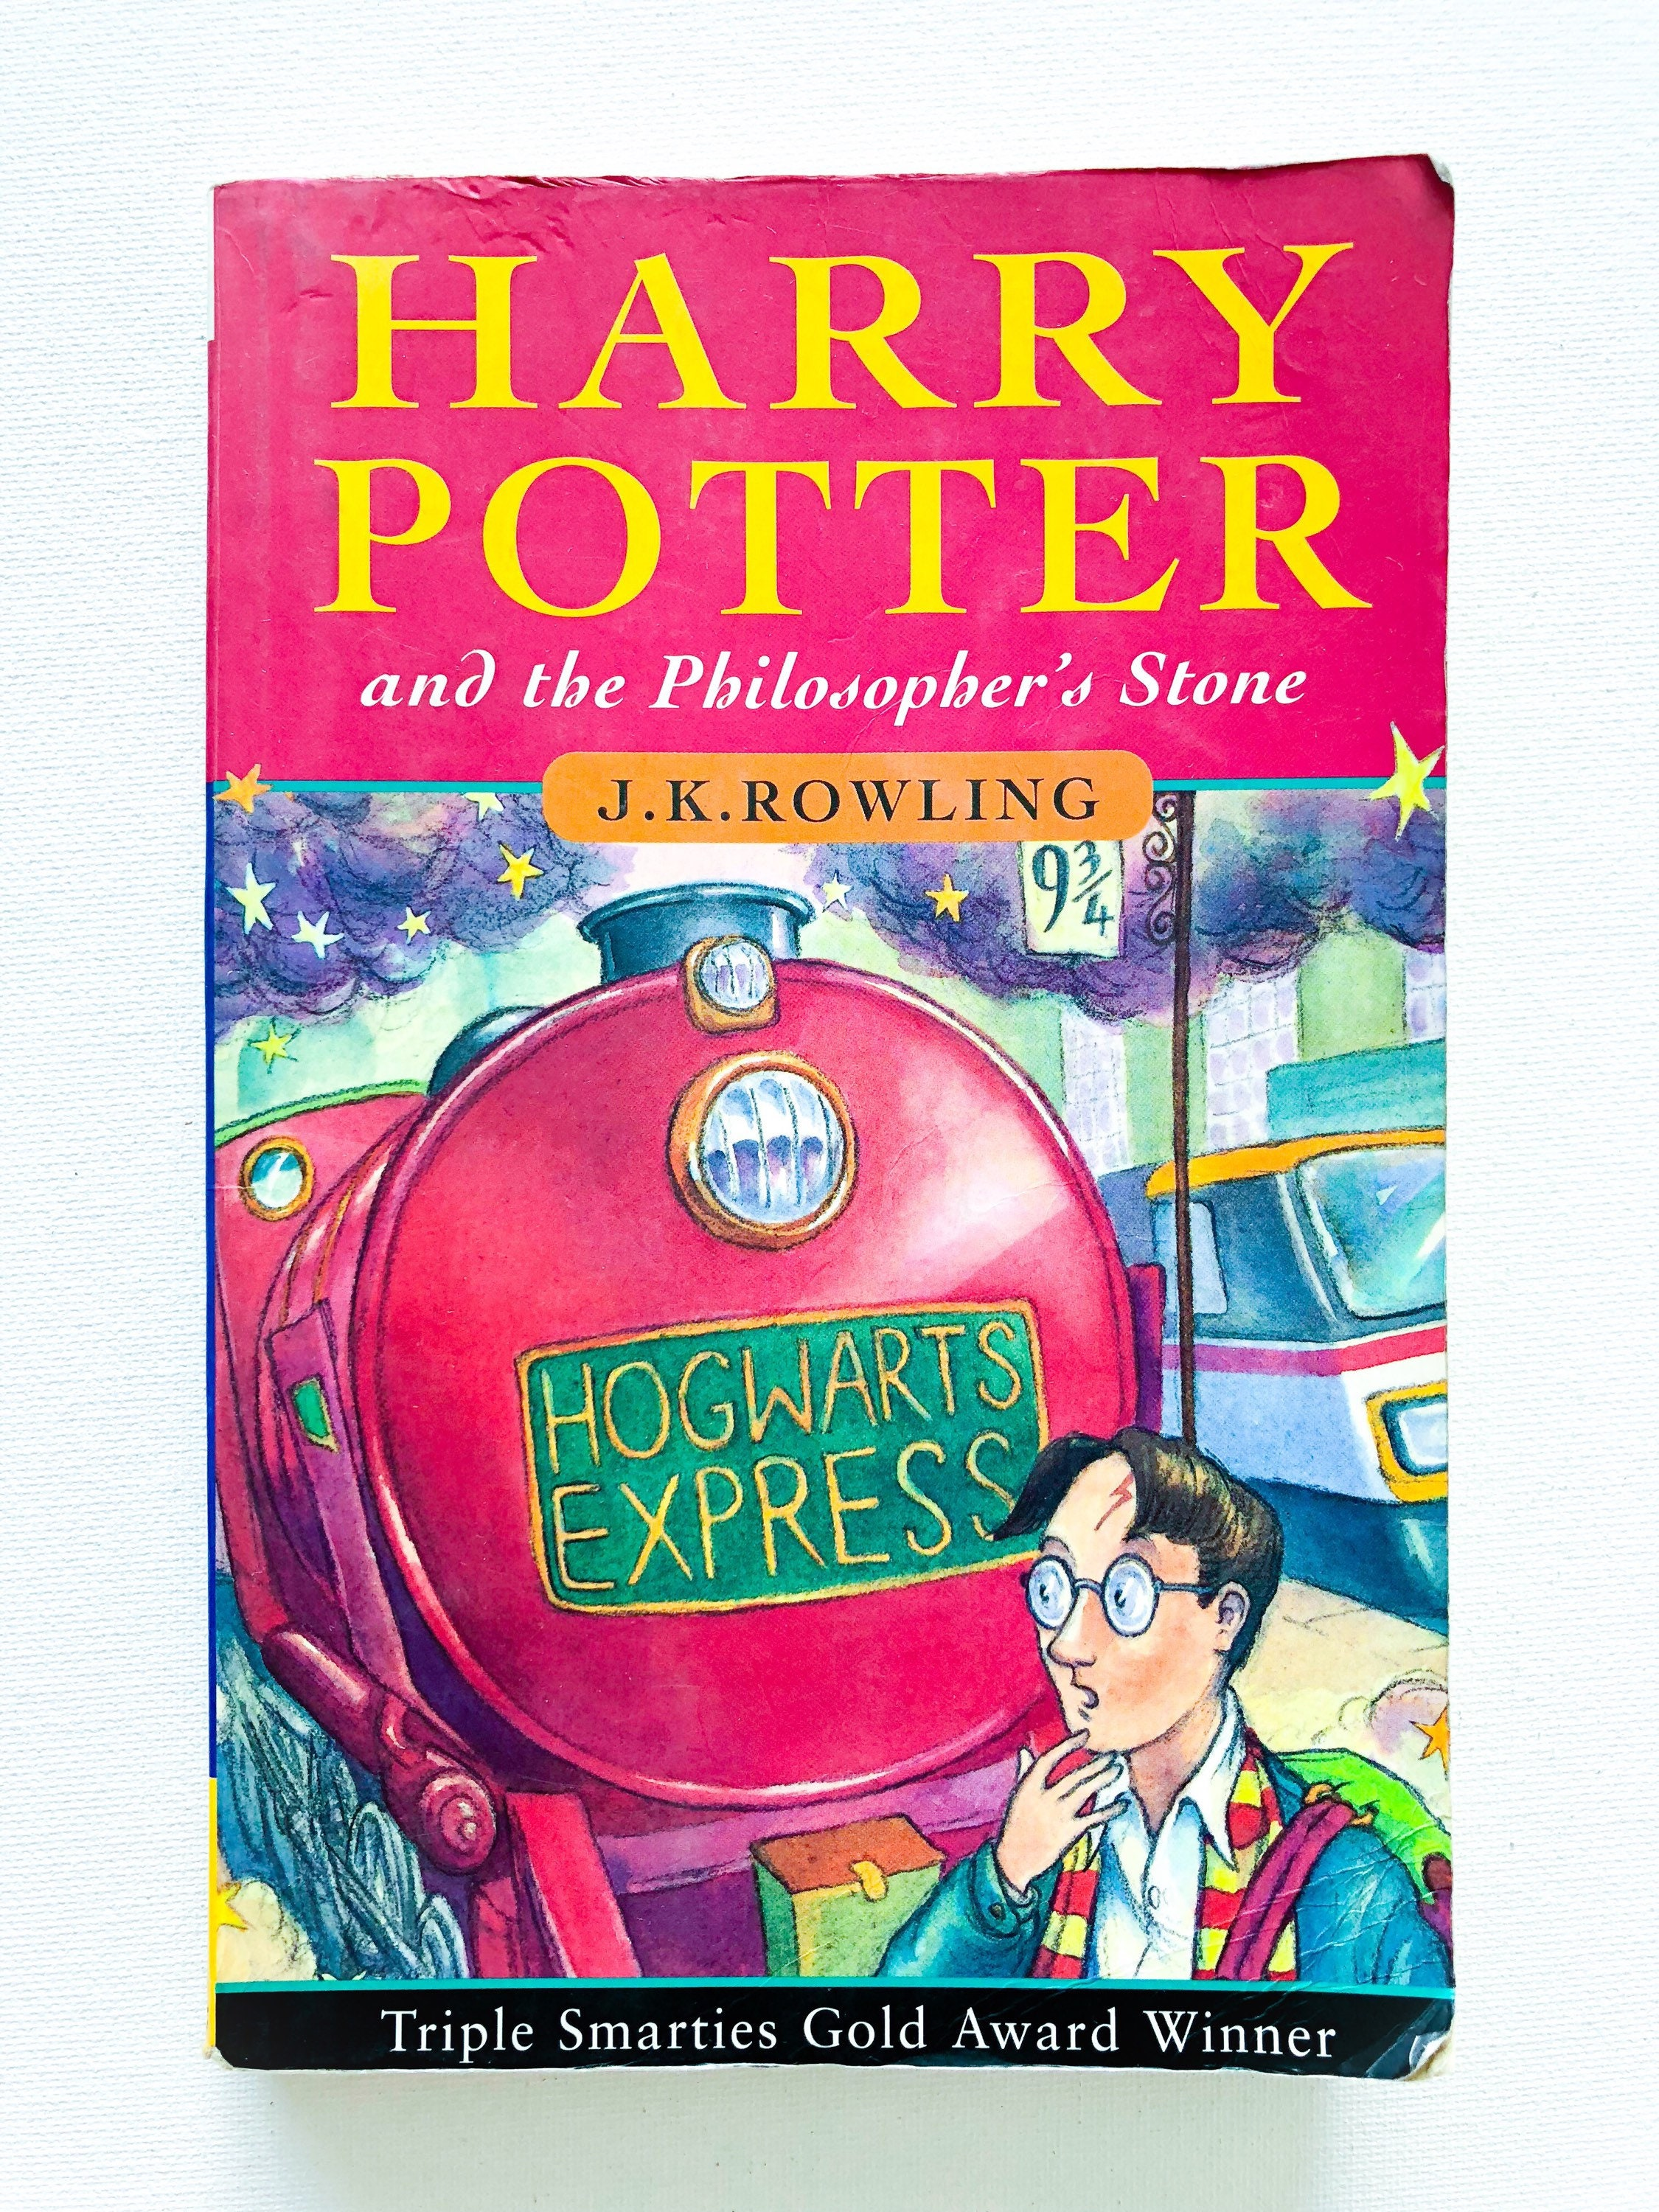 J.K Rowling / Harry Potter and the Philosophers Stone /